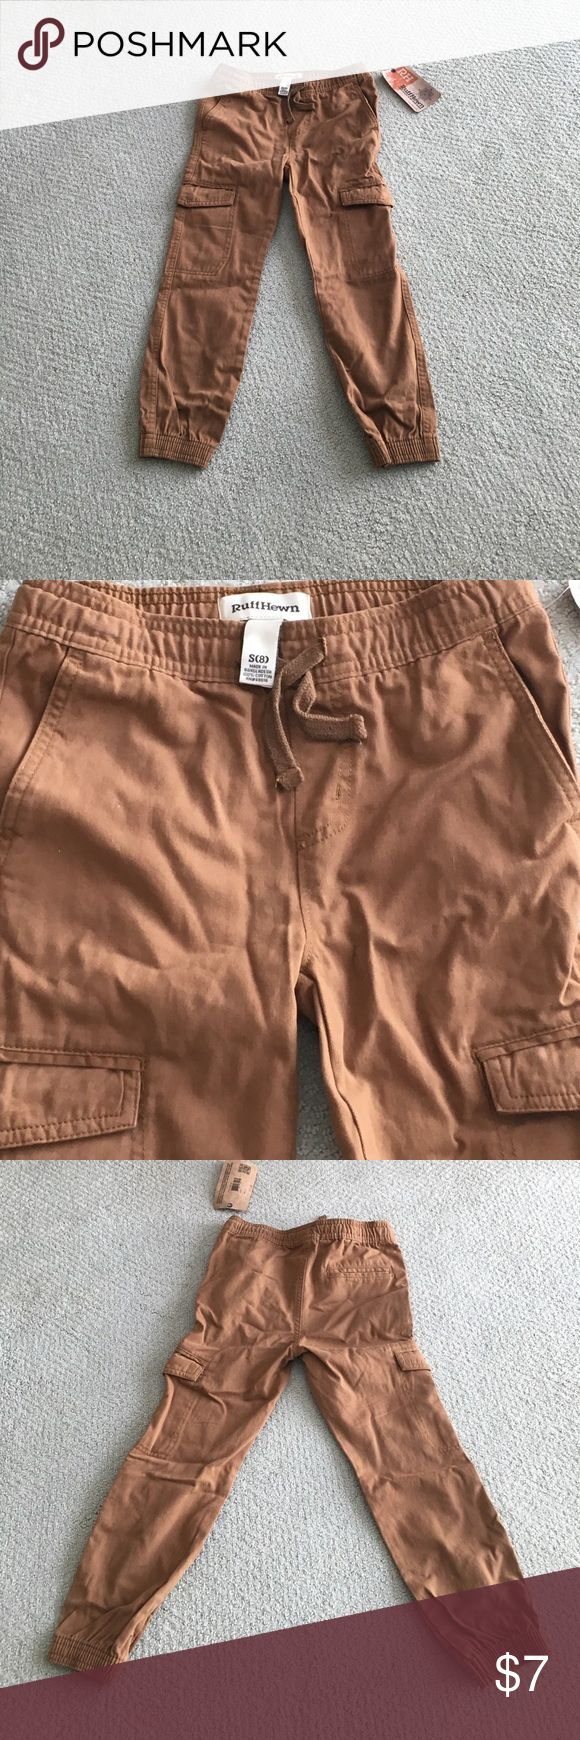 Boys Joggers Pants / Boys Cargo Pants Tobacco colored pants with elastic ankles and elastic drawstring waist. Durable. Never worn. Size S (8). Ruff Hewn Bottoms Sweatpants & Joggers